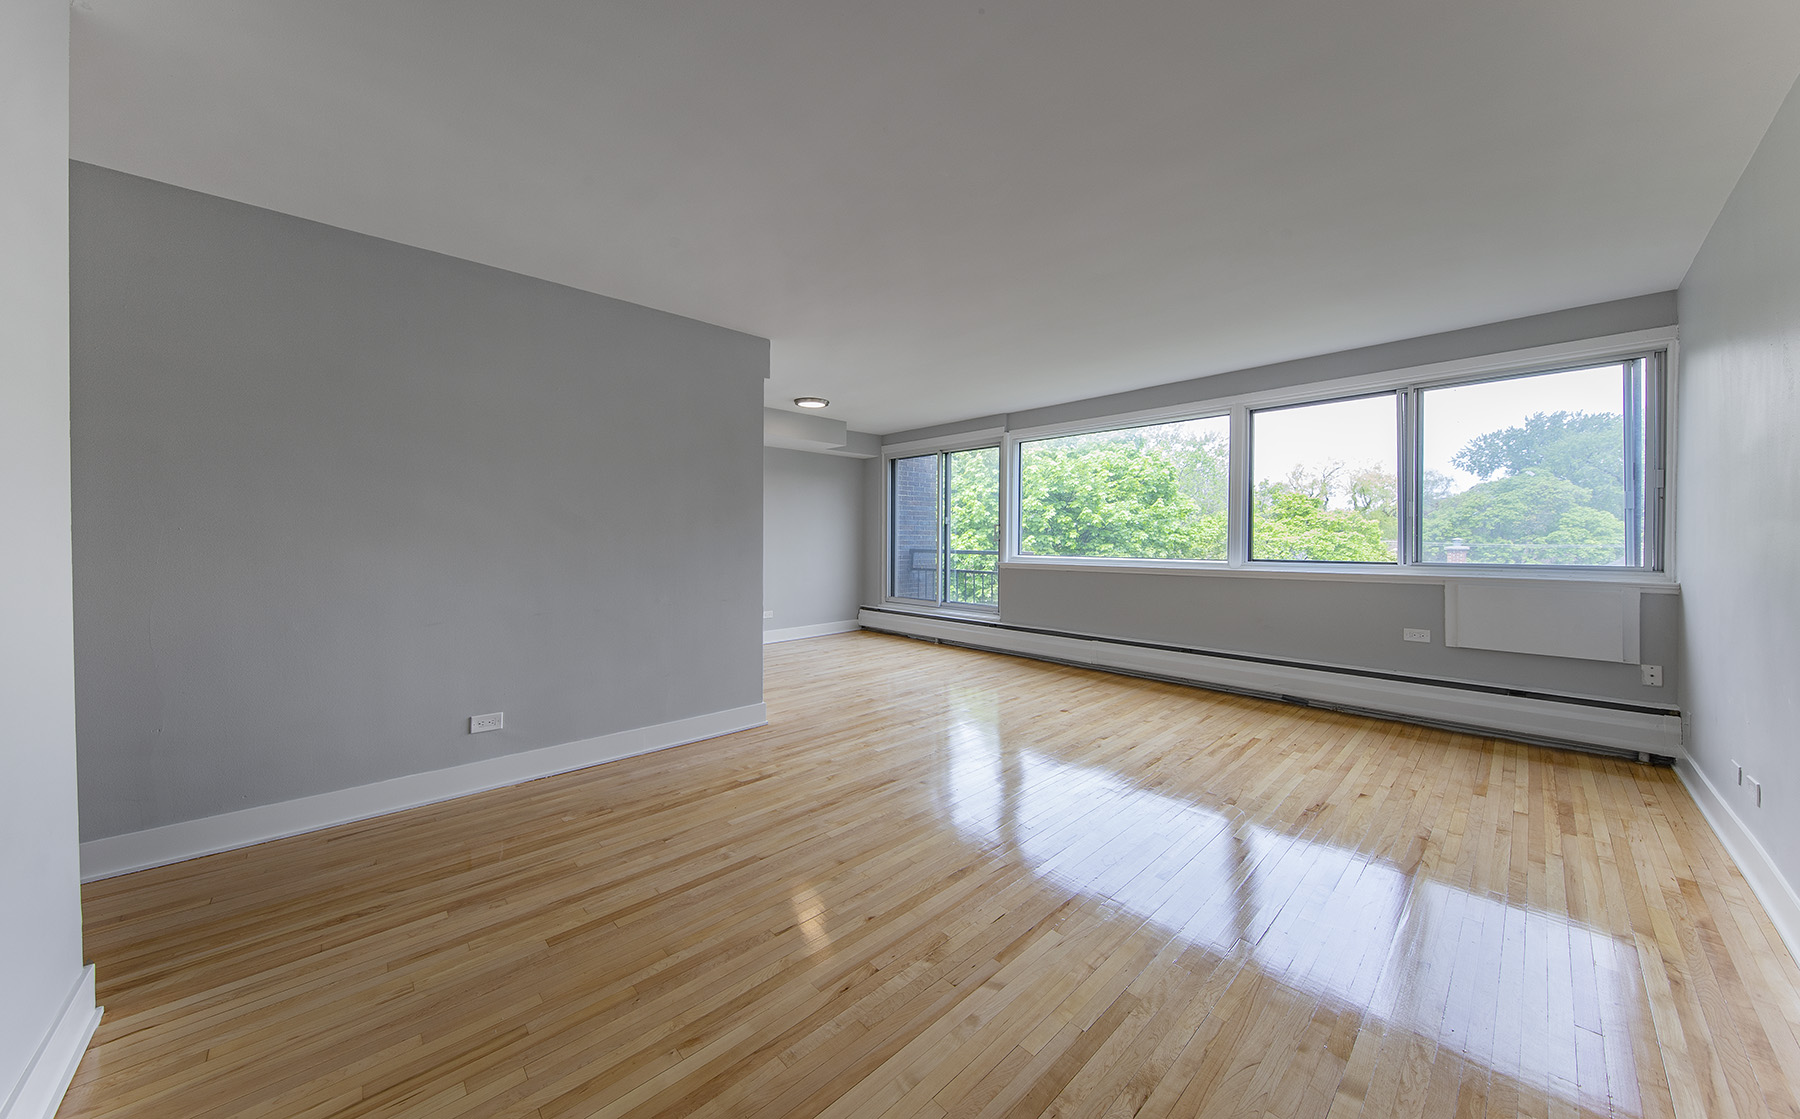 3 bedroom Apartments for rent in Cote-St-Luc at 5765 Cote St-Luc - Photo 01 - RentQuebecApartments – L401534